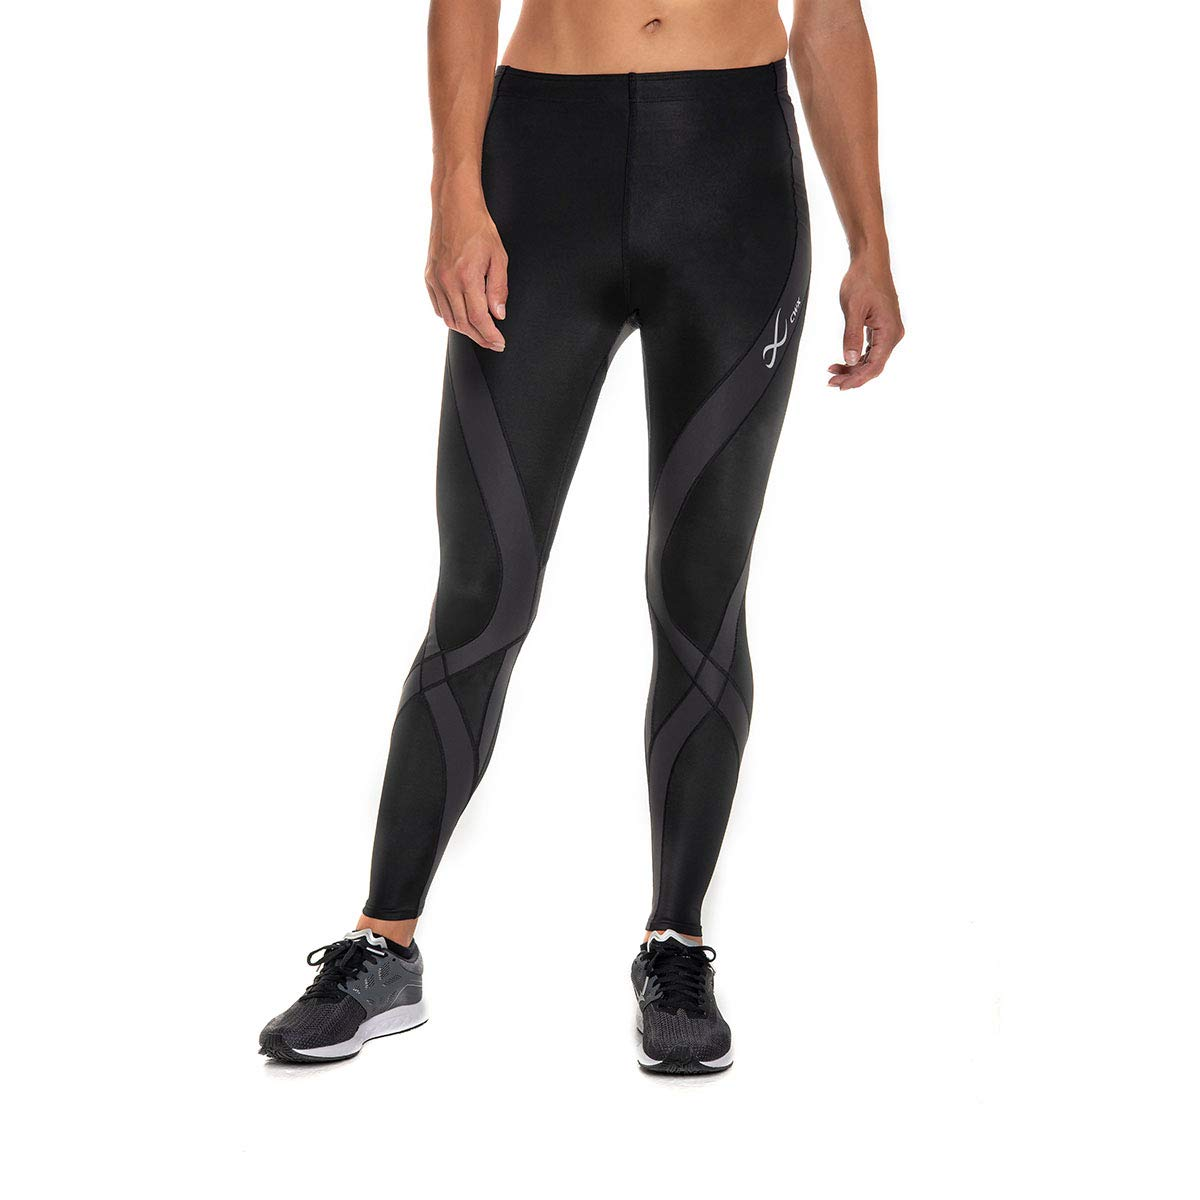 CW-X Women's Pro Running Tights,Black,Medium by CW-X